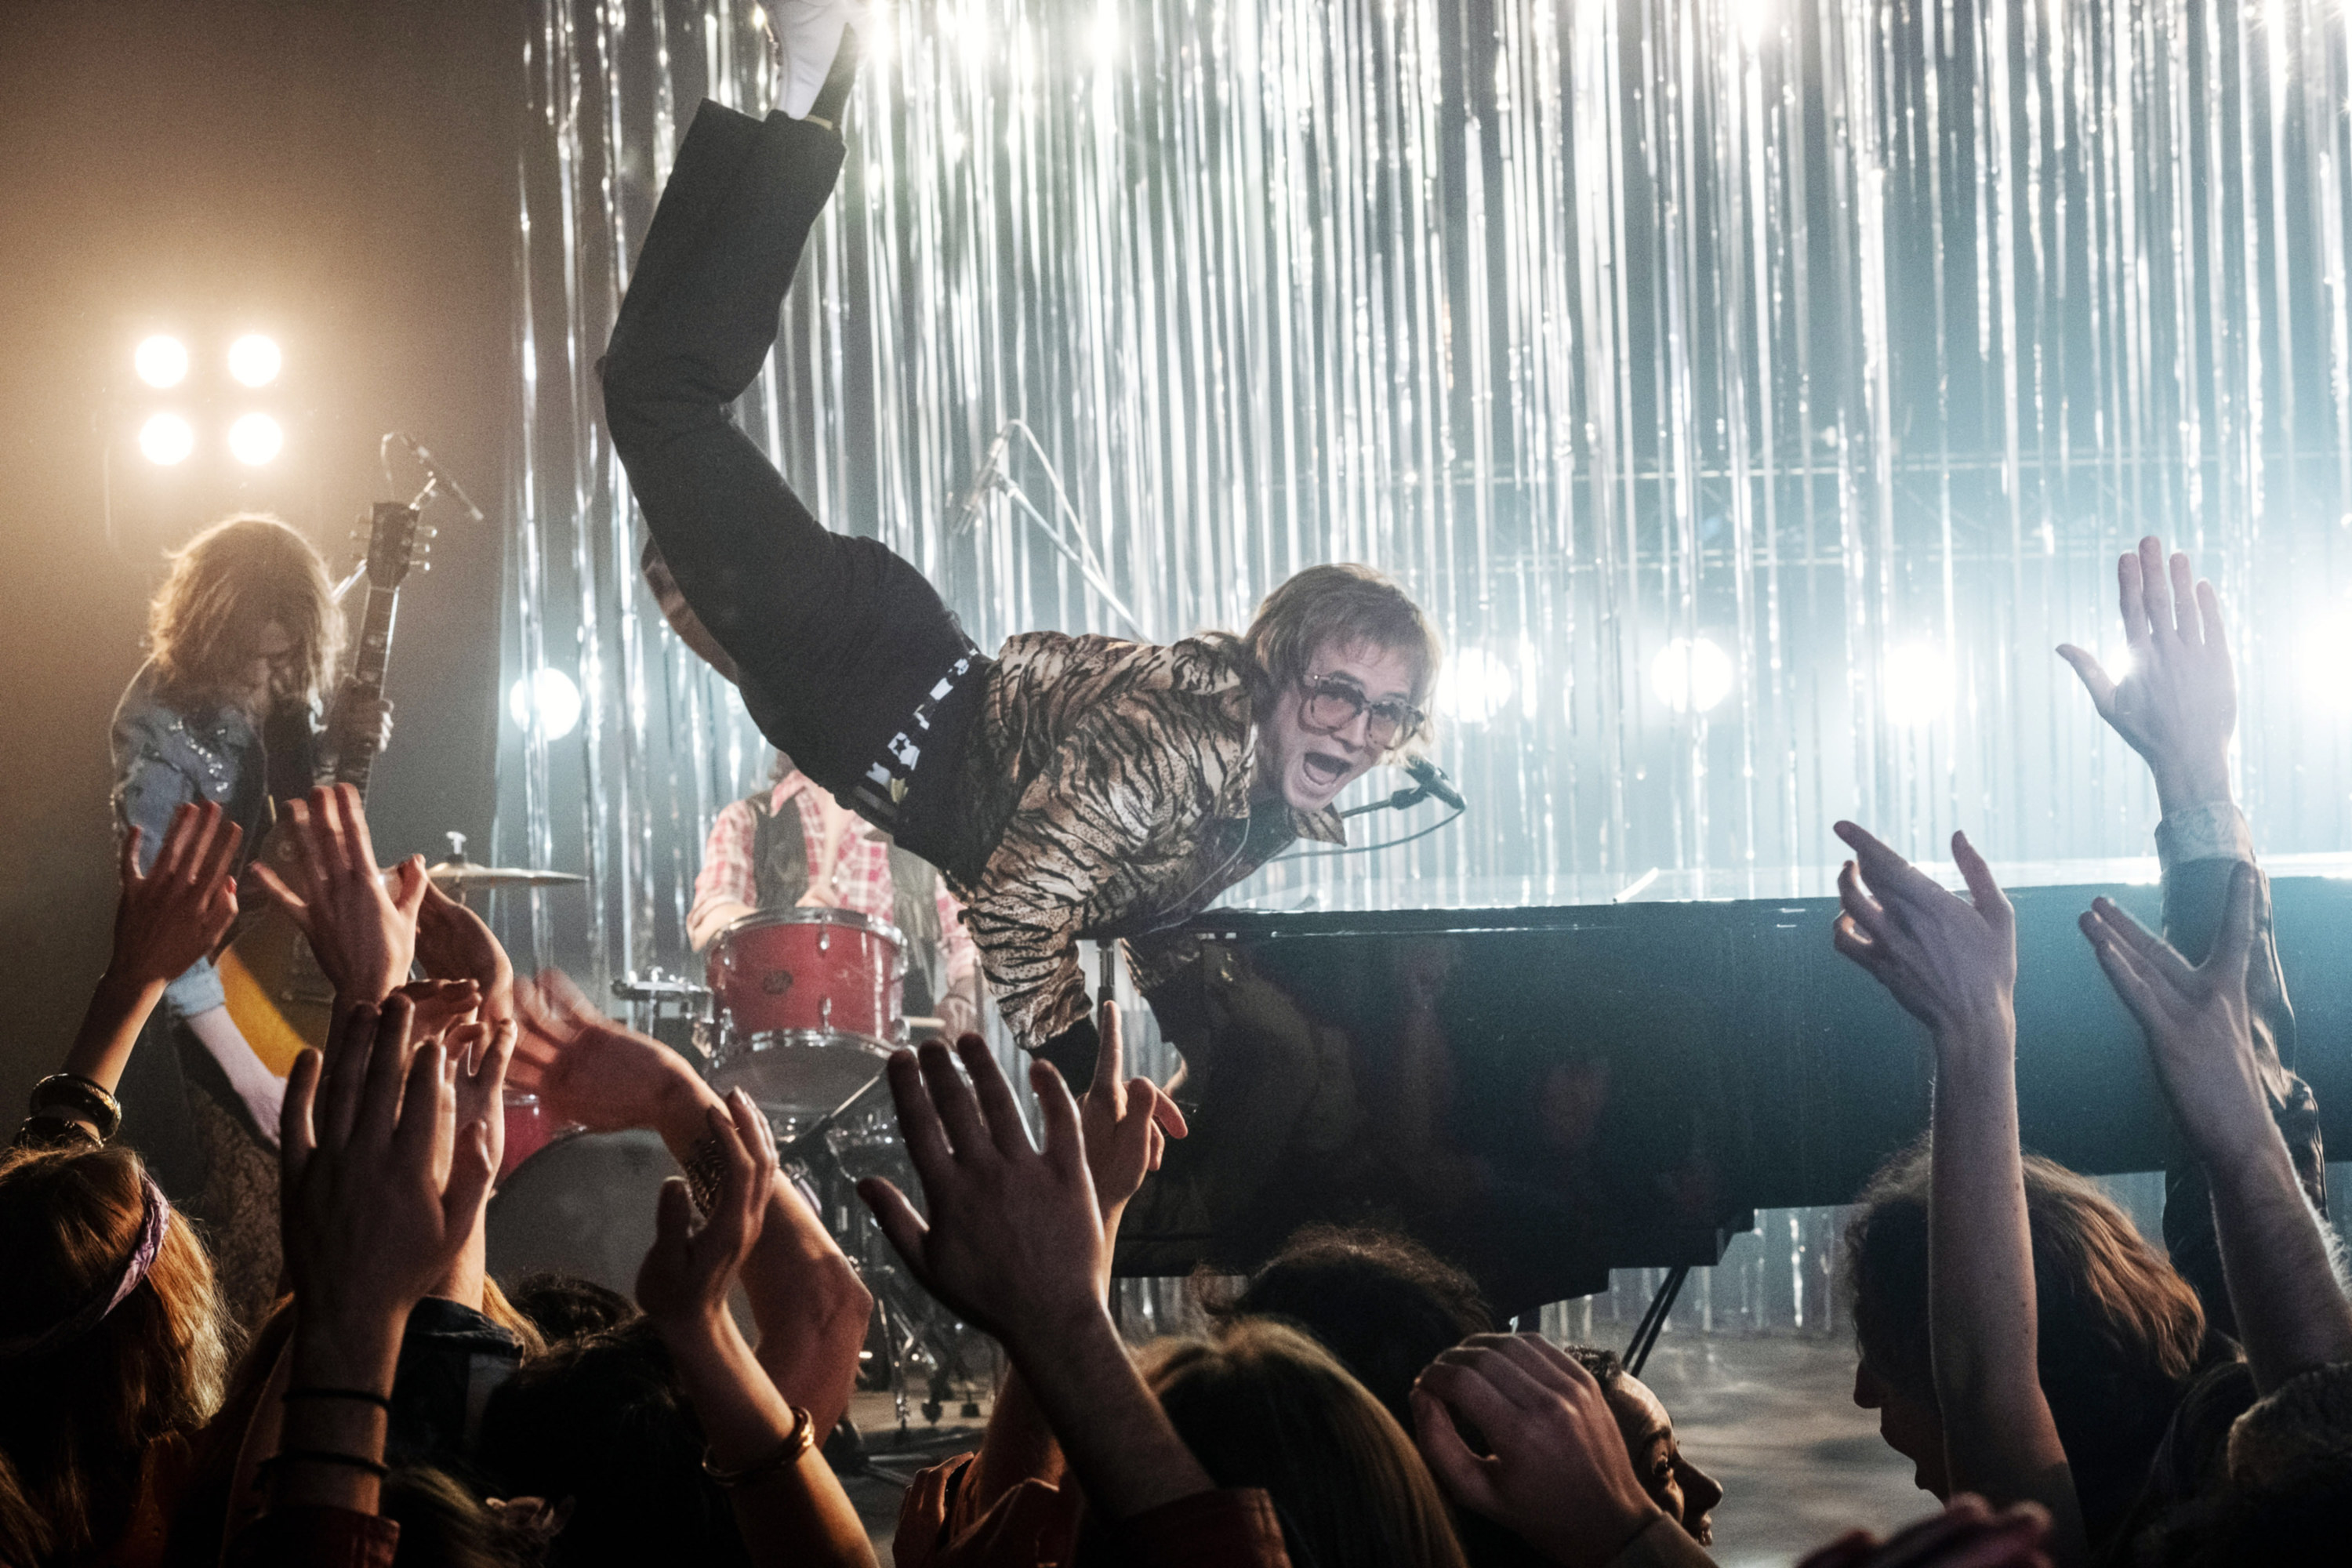 Taron Egerton as Elton John jumping up as he performs for an excited crowd